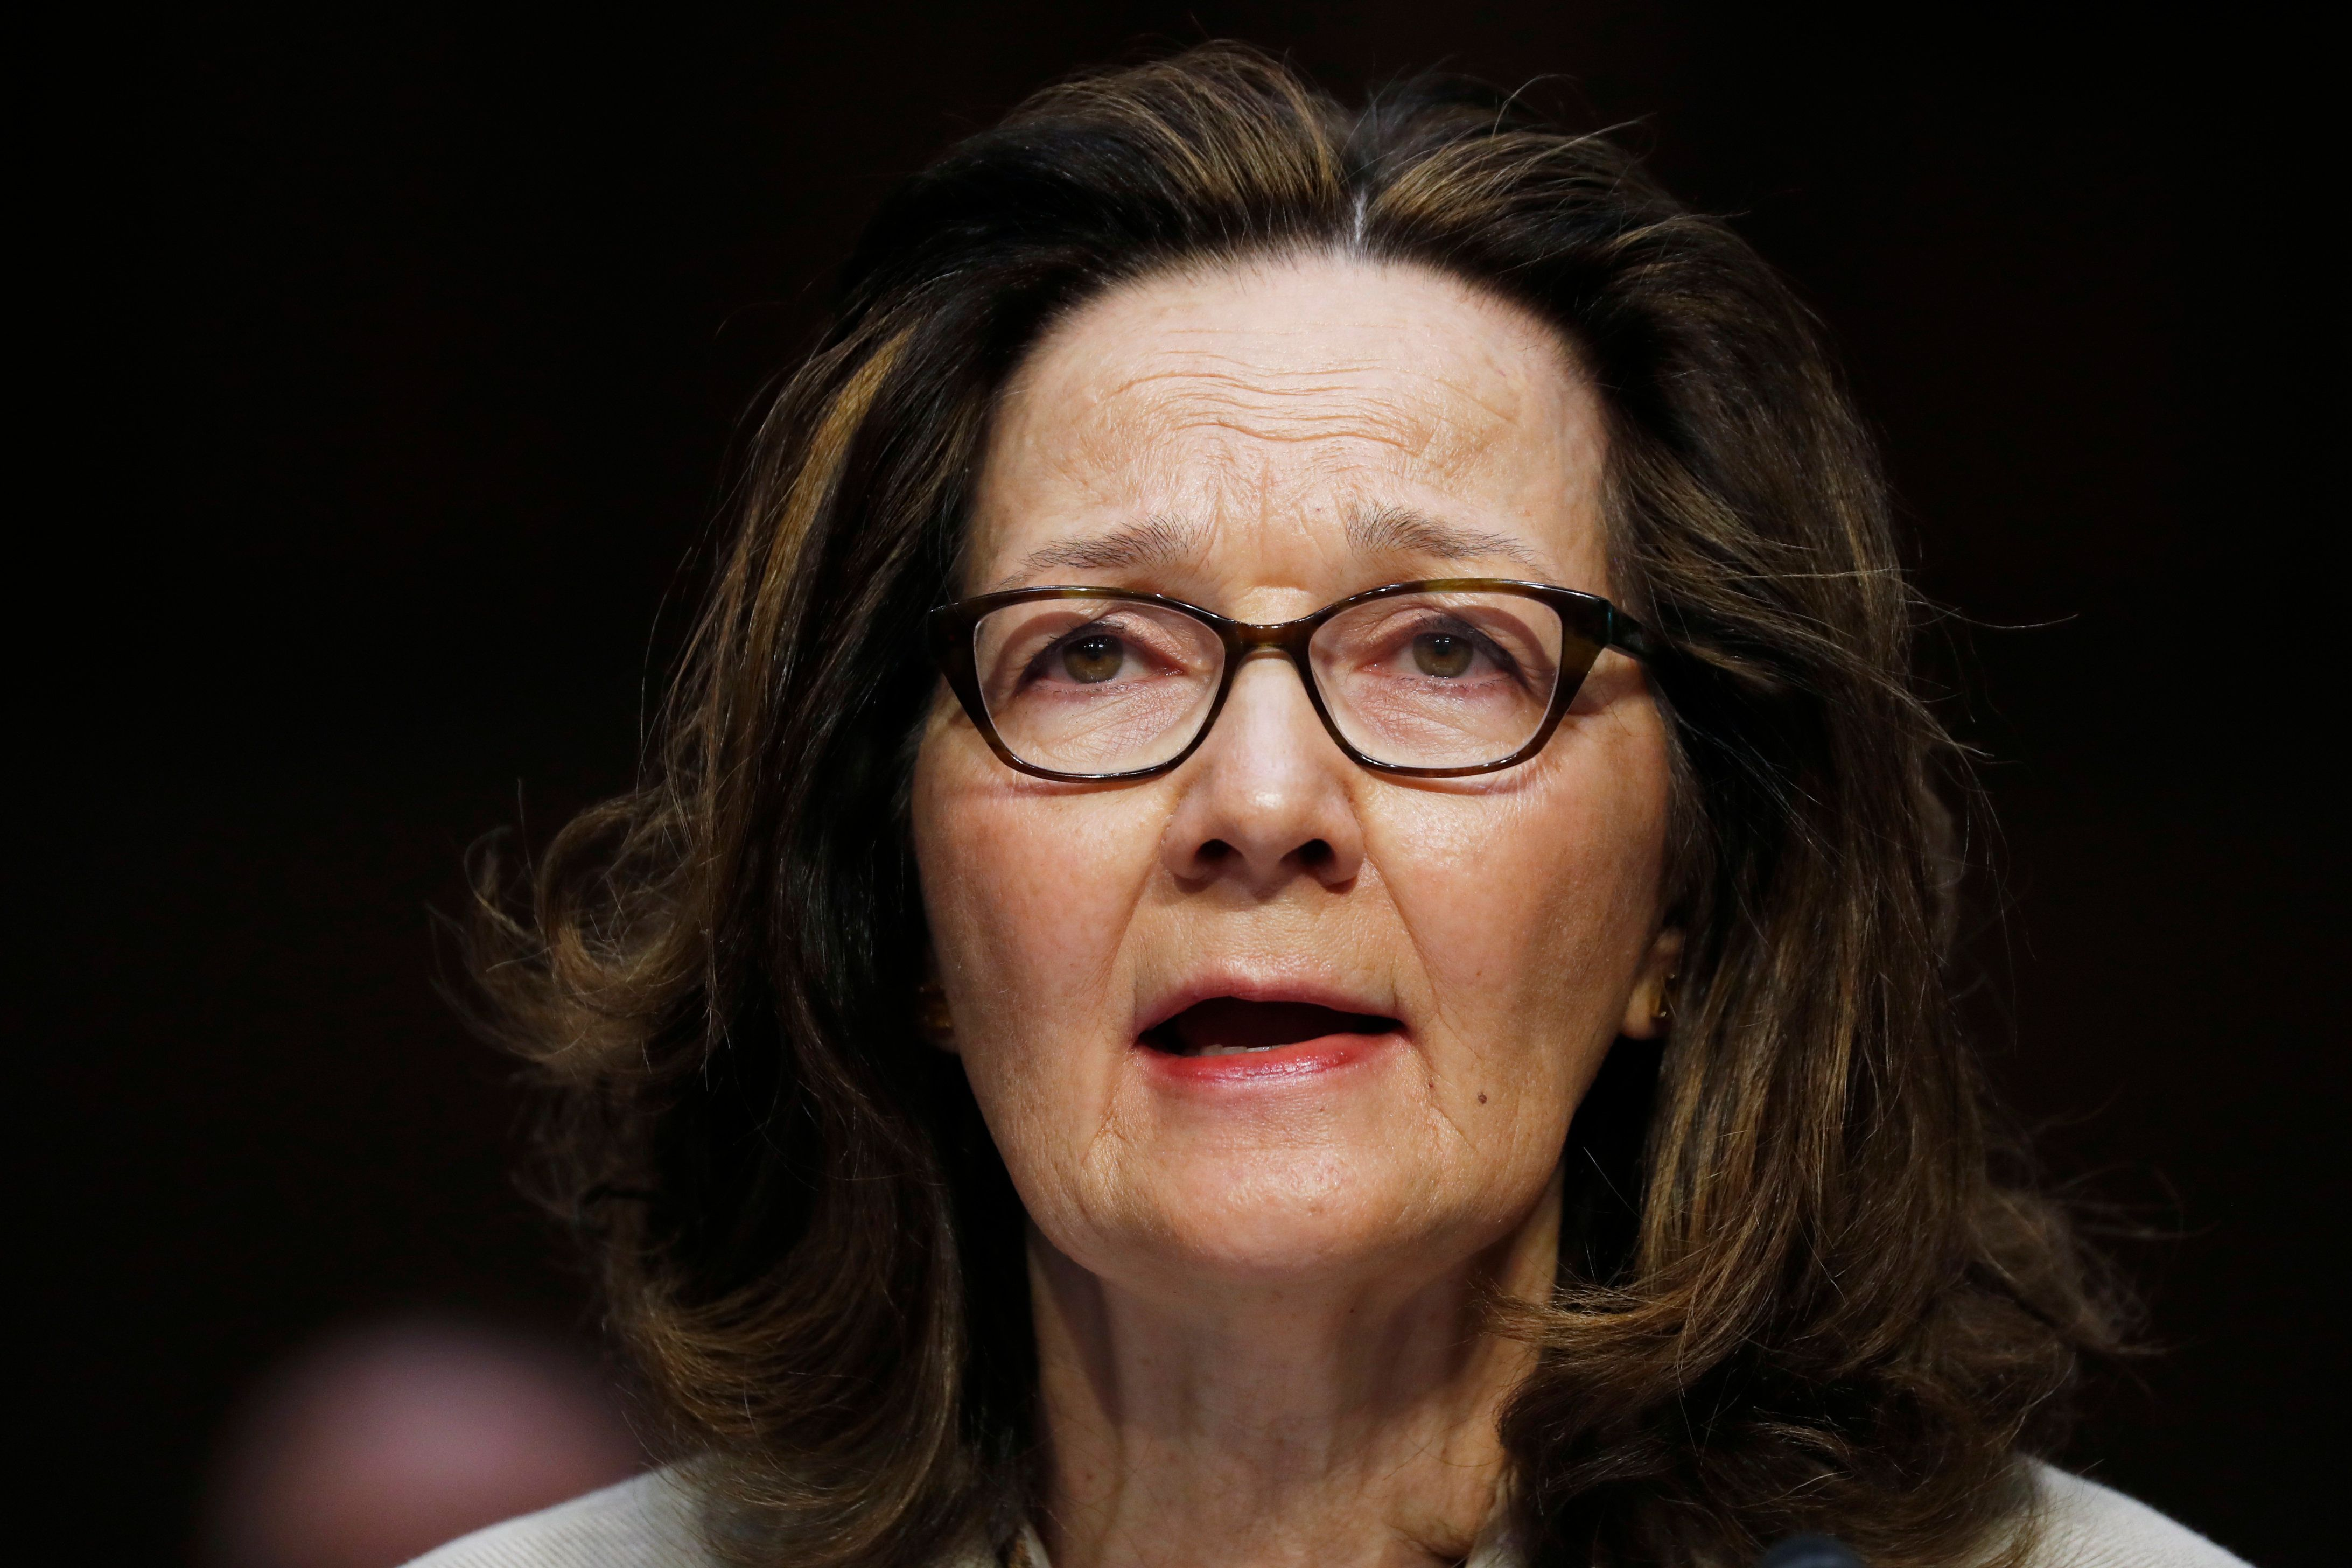 Acting CIA Director Gina Haspel testifies at her Senate Intelligence Committee confirmation hearing on Capitol Hill in Washington, U.S., May 9, 2018.